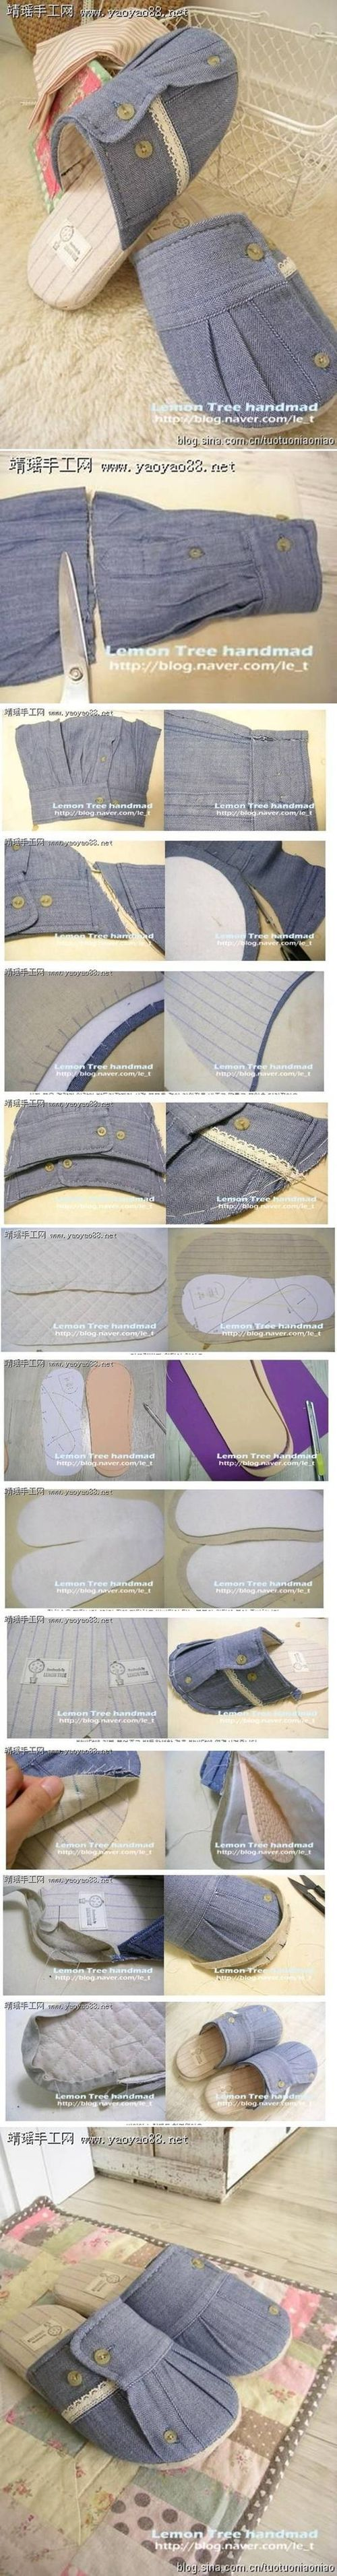 DIY Old Clothes Cuff Slipper DIY Projects / UsefulDIY.com